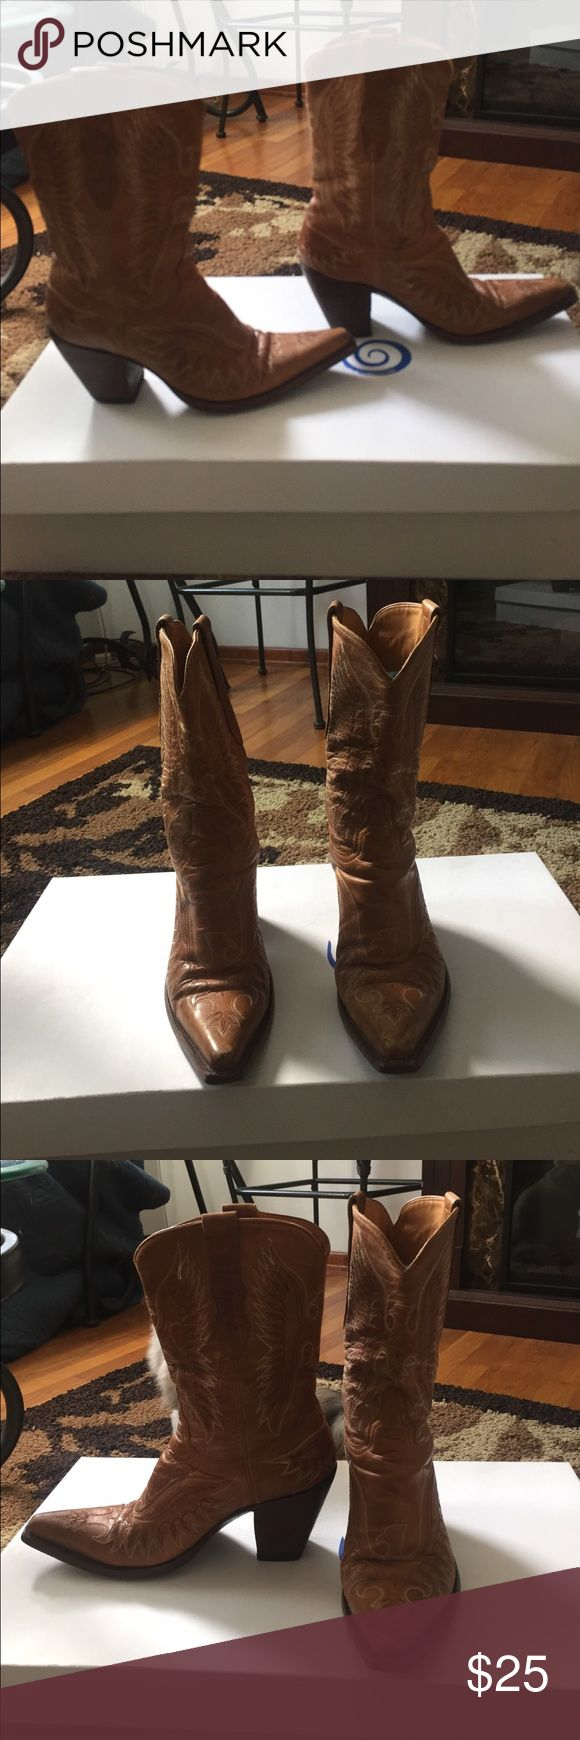 Old Gringo Women's Cowboy Boots Size 8 women's boots purchased in Wyoming. Gently used and worn only a handful of times.  Some wear on the toes of the boots. Old Gringo Shoes Heeled Boots